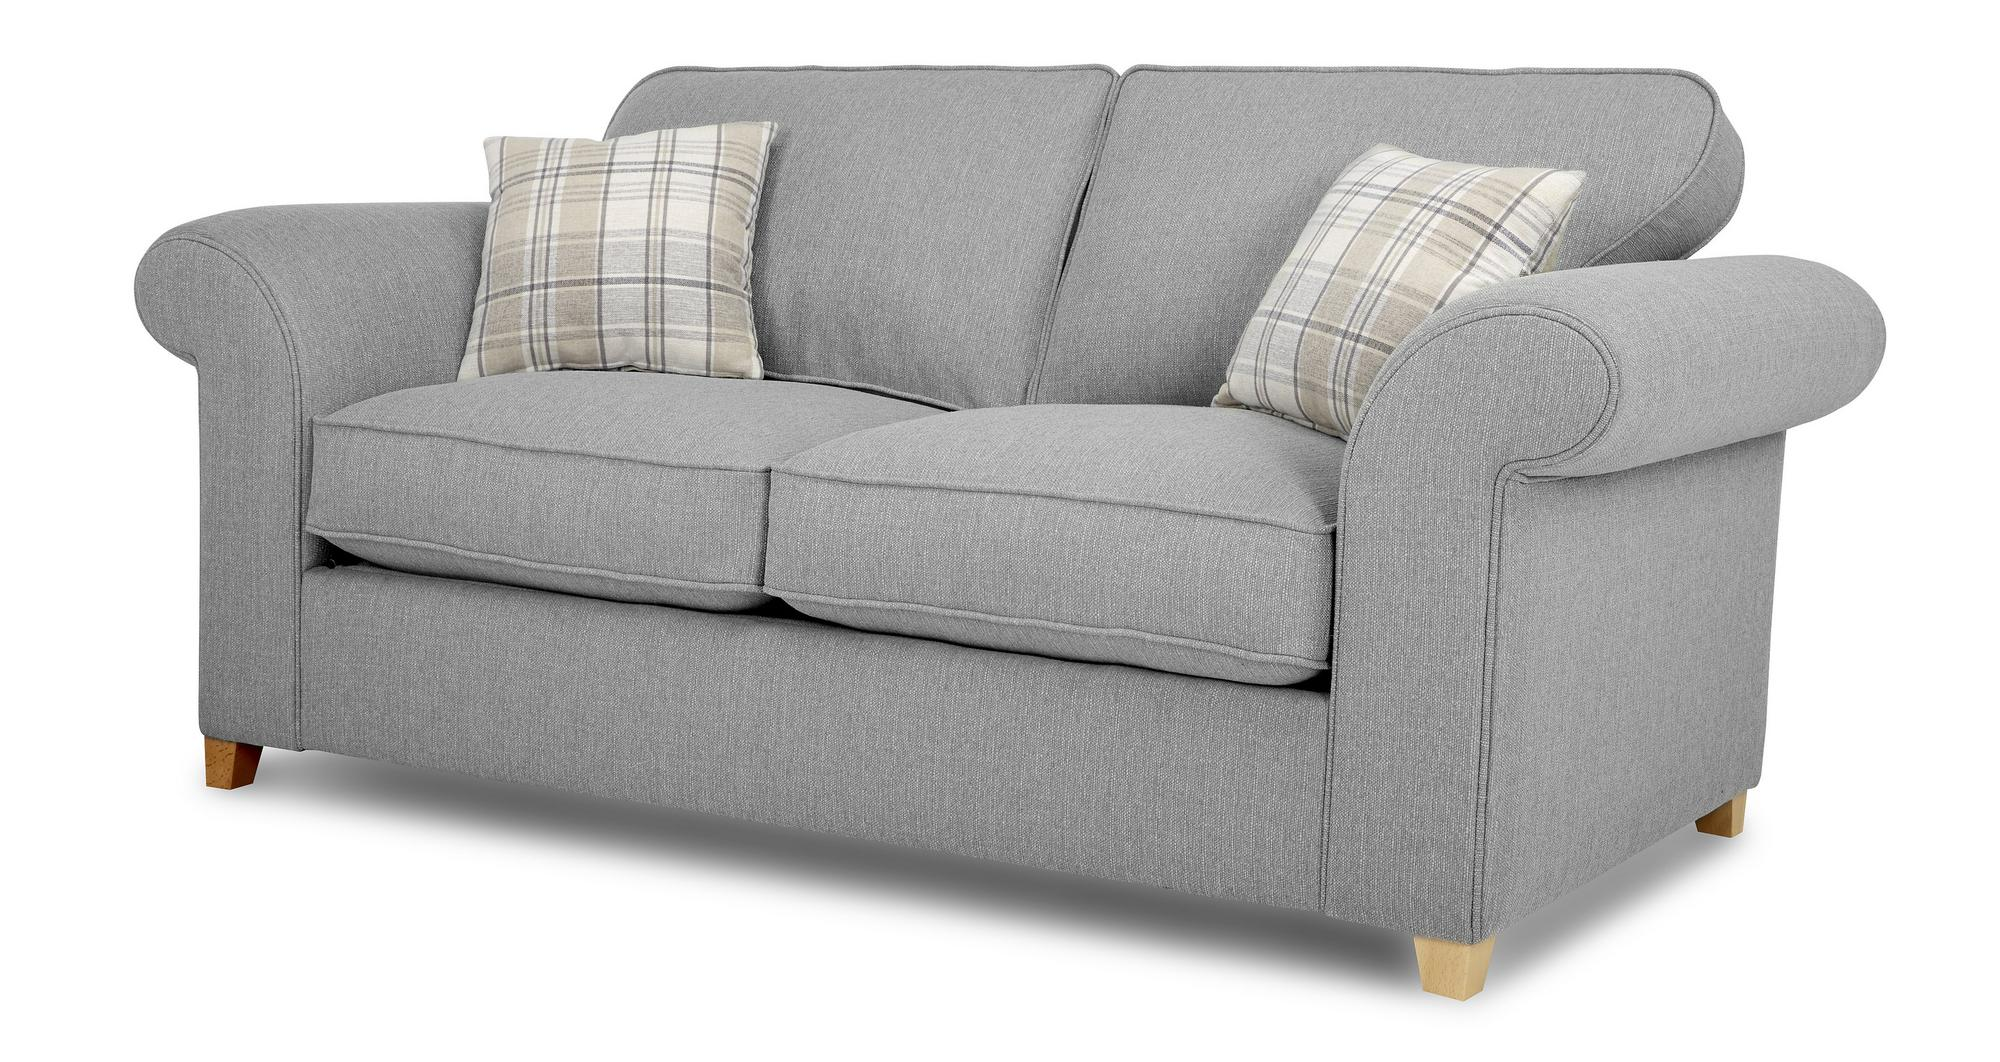 Dfs Dorset Fabric 2 Seater Sofa Bed 61779 Ebay